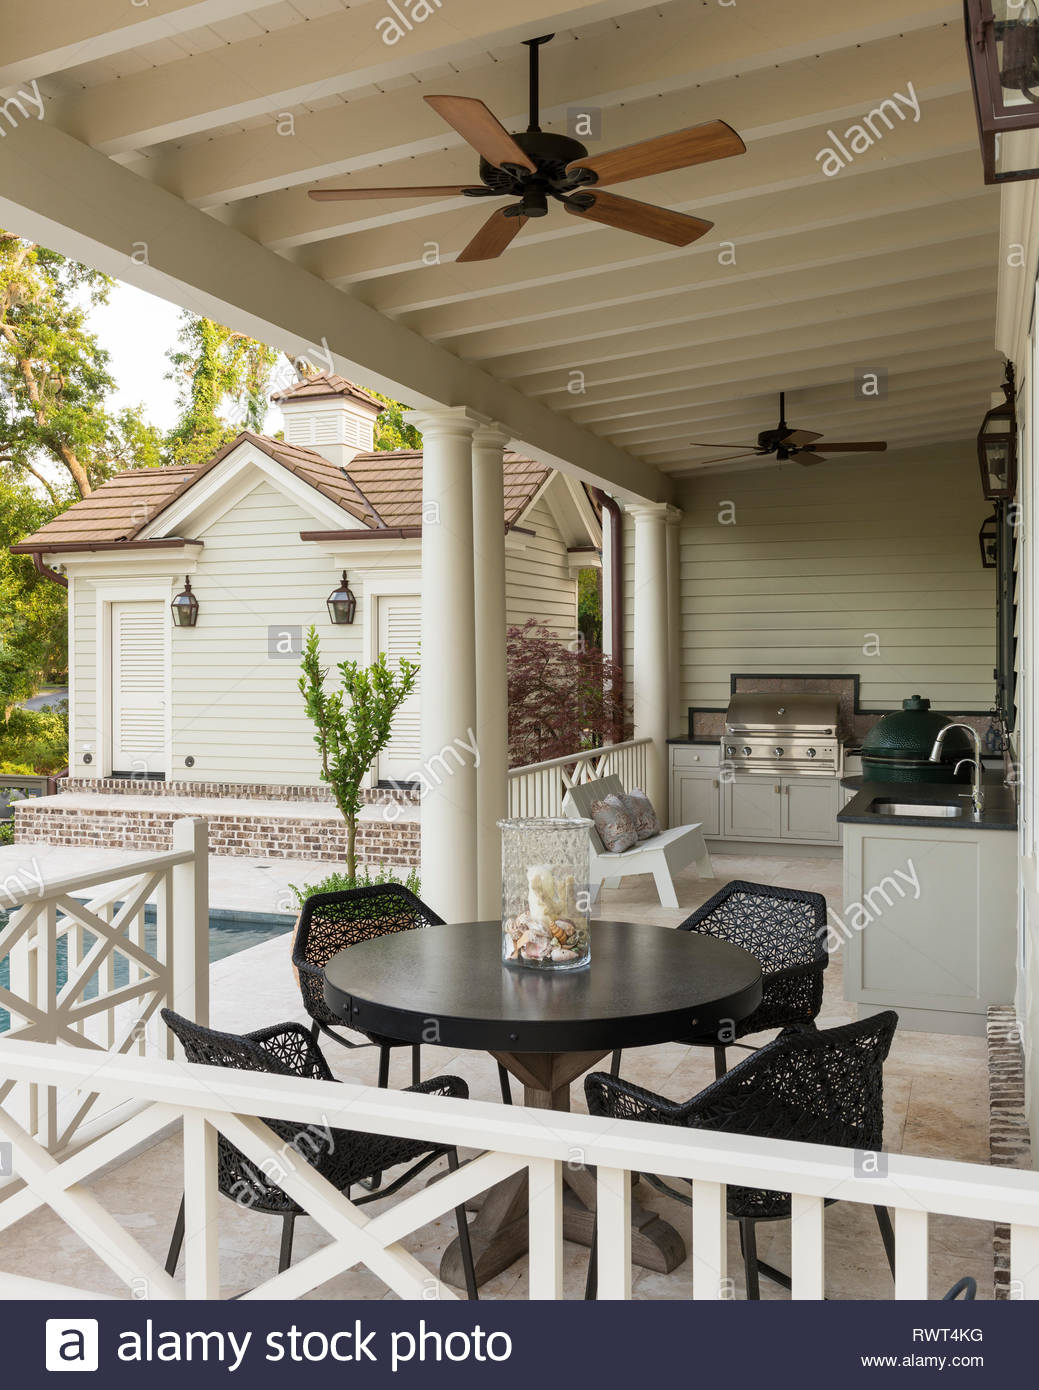 Dining and barbecue area on veranda - Stock Image